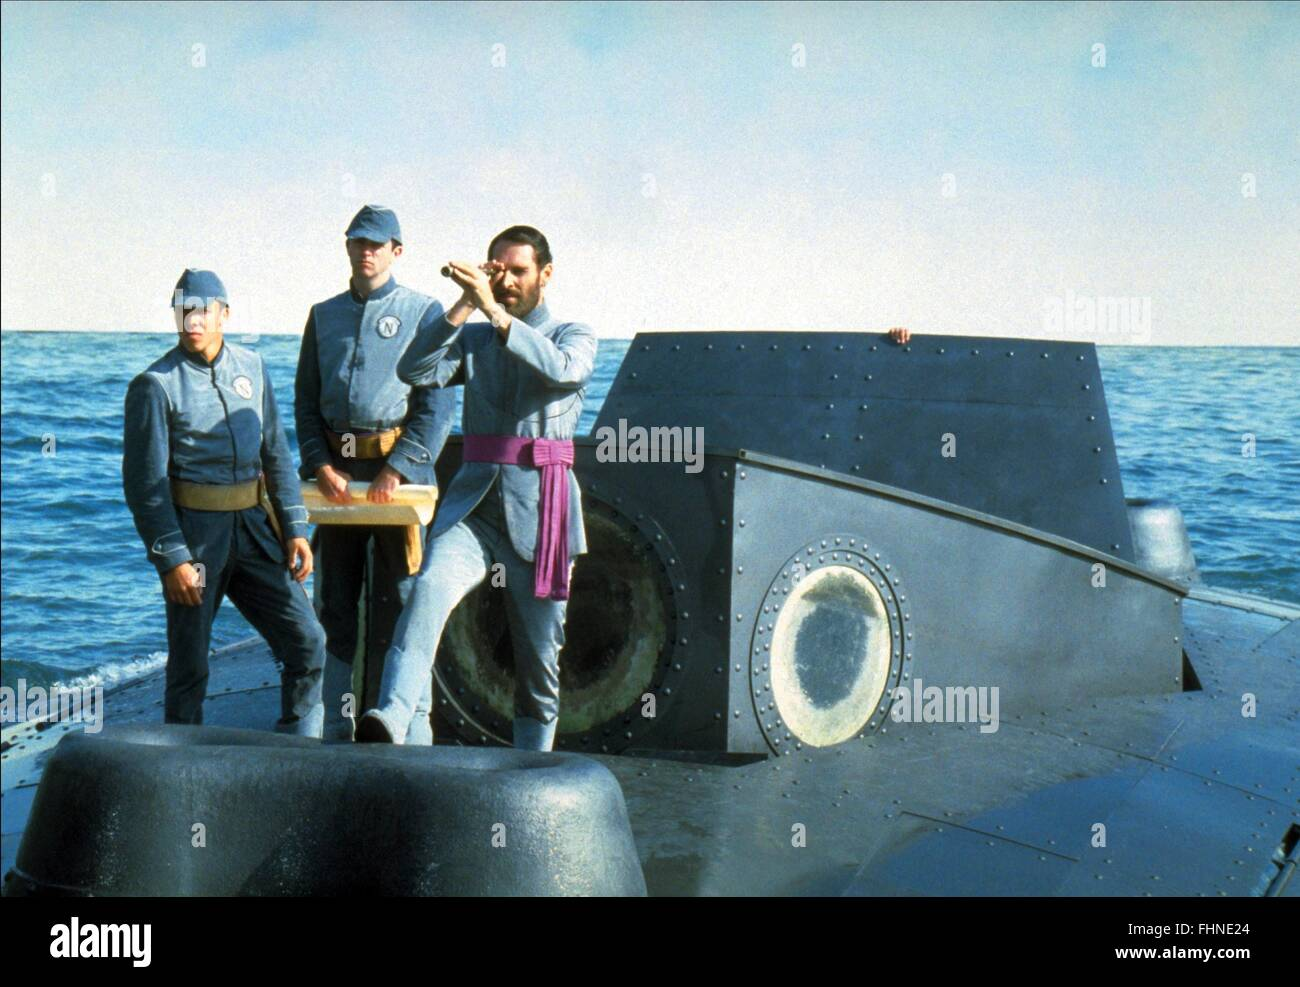 BEN CROSS 20 000 LEAGUES UNDER THE SEA (1997) - Stock Image